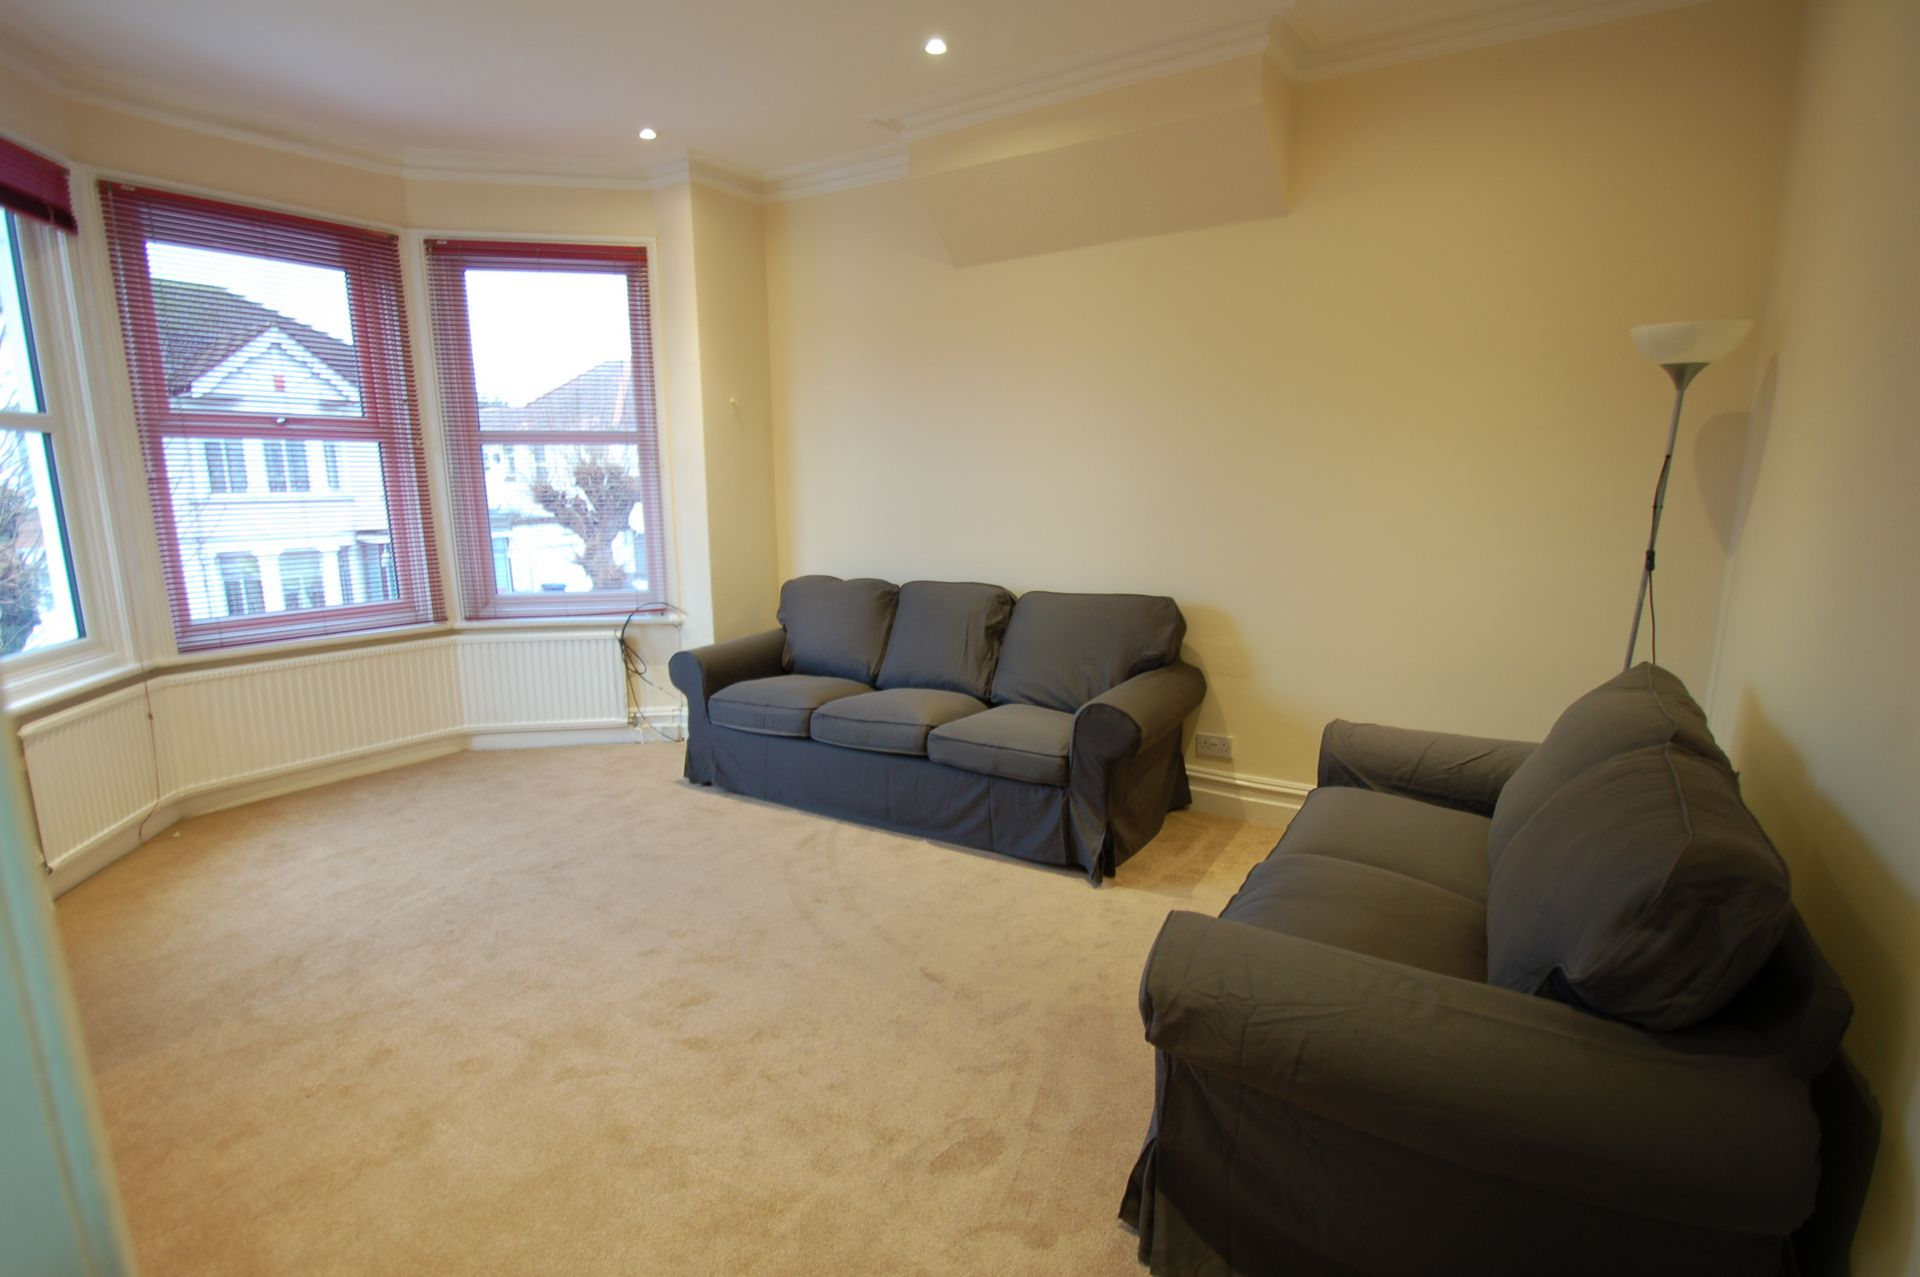 Photo 12, Audley Rd, Hendon, NW4